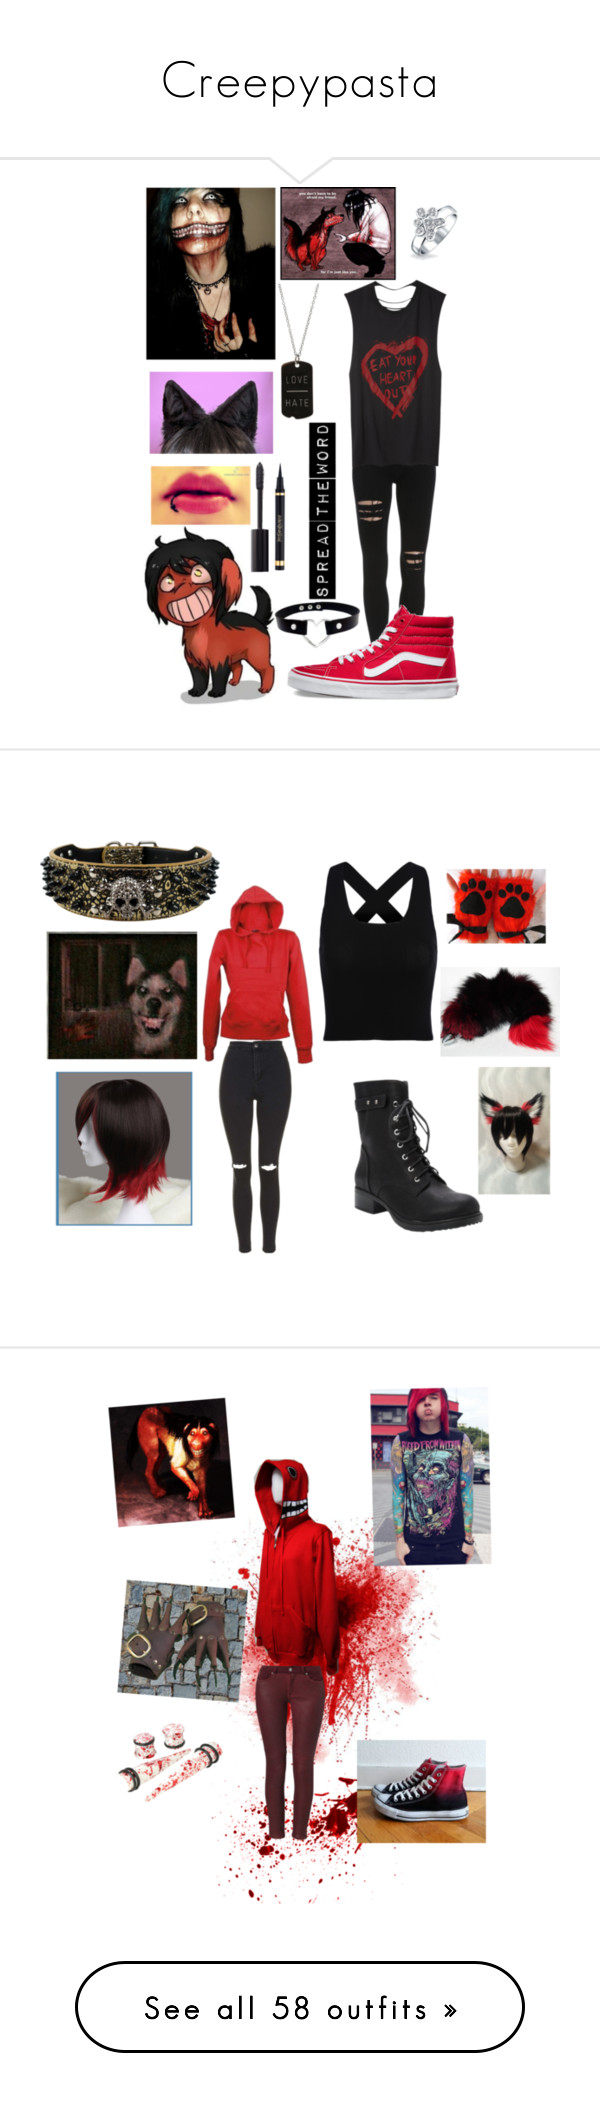 """""""Creepypasta"""" by tomboy-for-life ❤ liked on Polyvore featuring Forum, Vans, Bling Jewelry, ADORNIA, Chanel, Yves Saint Laurent, Topshop, Torrid, 7 For All Mankind and Converse"""